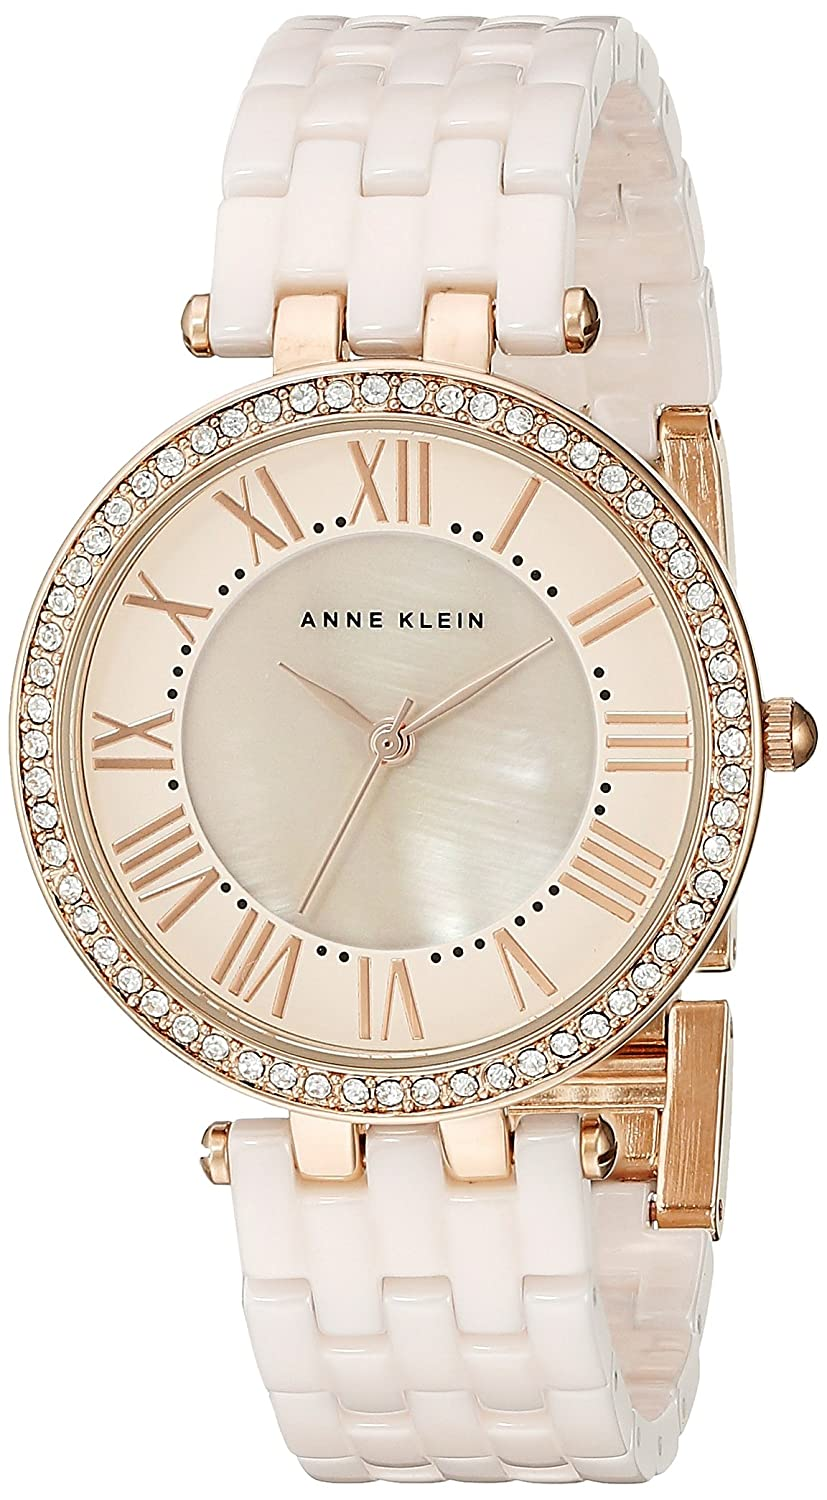 Anne Klein Women s AK 2130RGLP Swarovski Crystal-Accented Rose Gold-Tone and Light Pink Ceramic Bracelet Watch